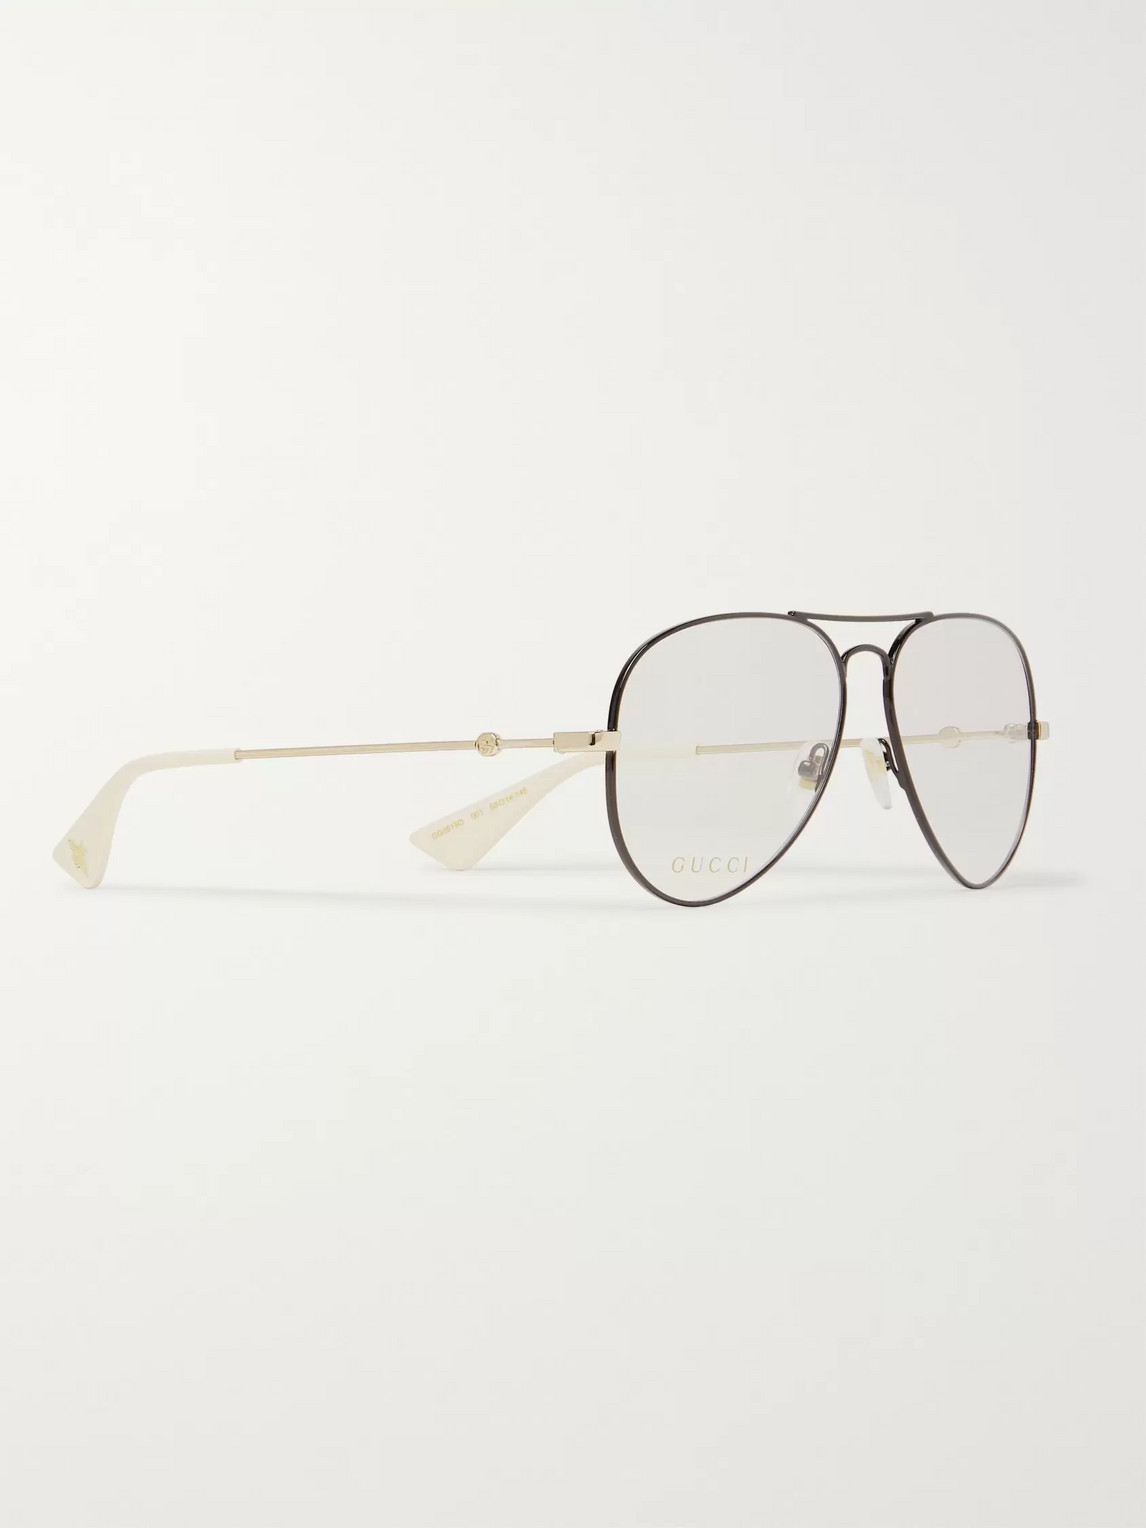 Gucci Opticals AVIATOR-STYLE BLACK AND GOLD-TONE OPTICAL GLASSES